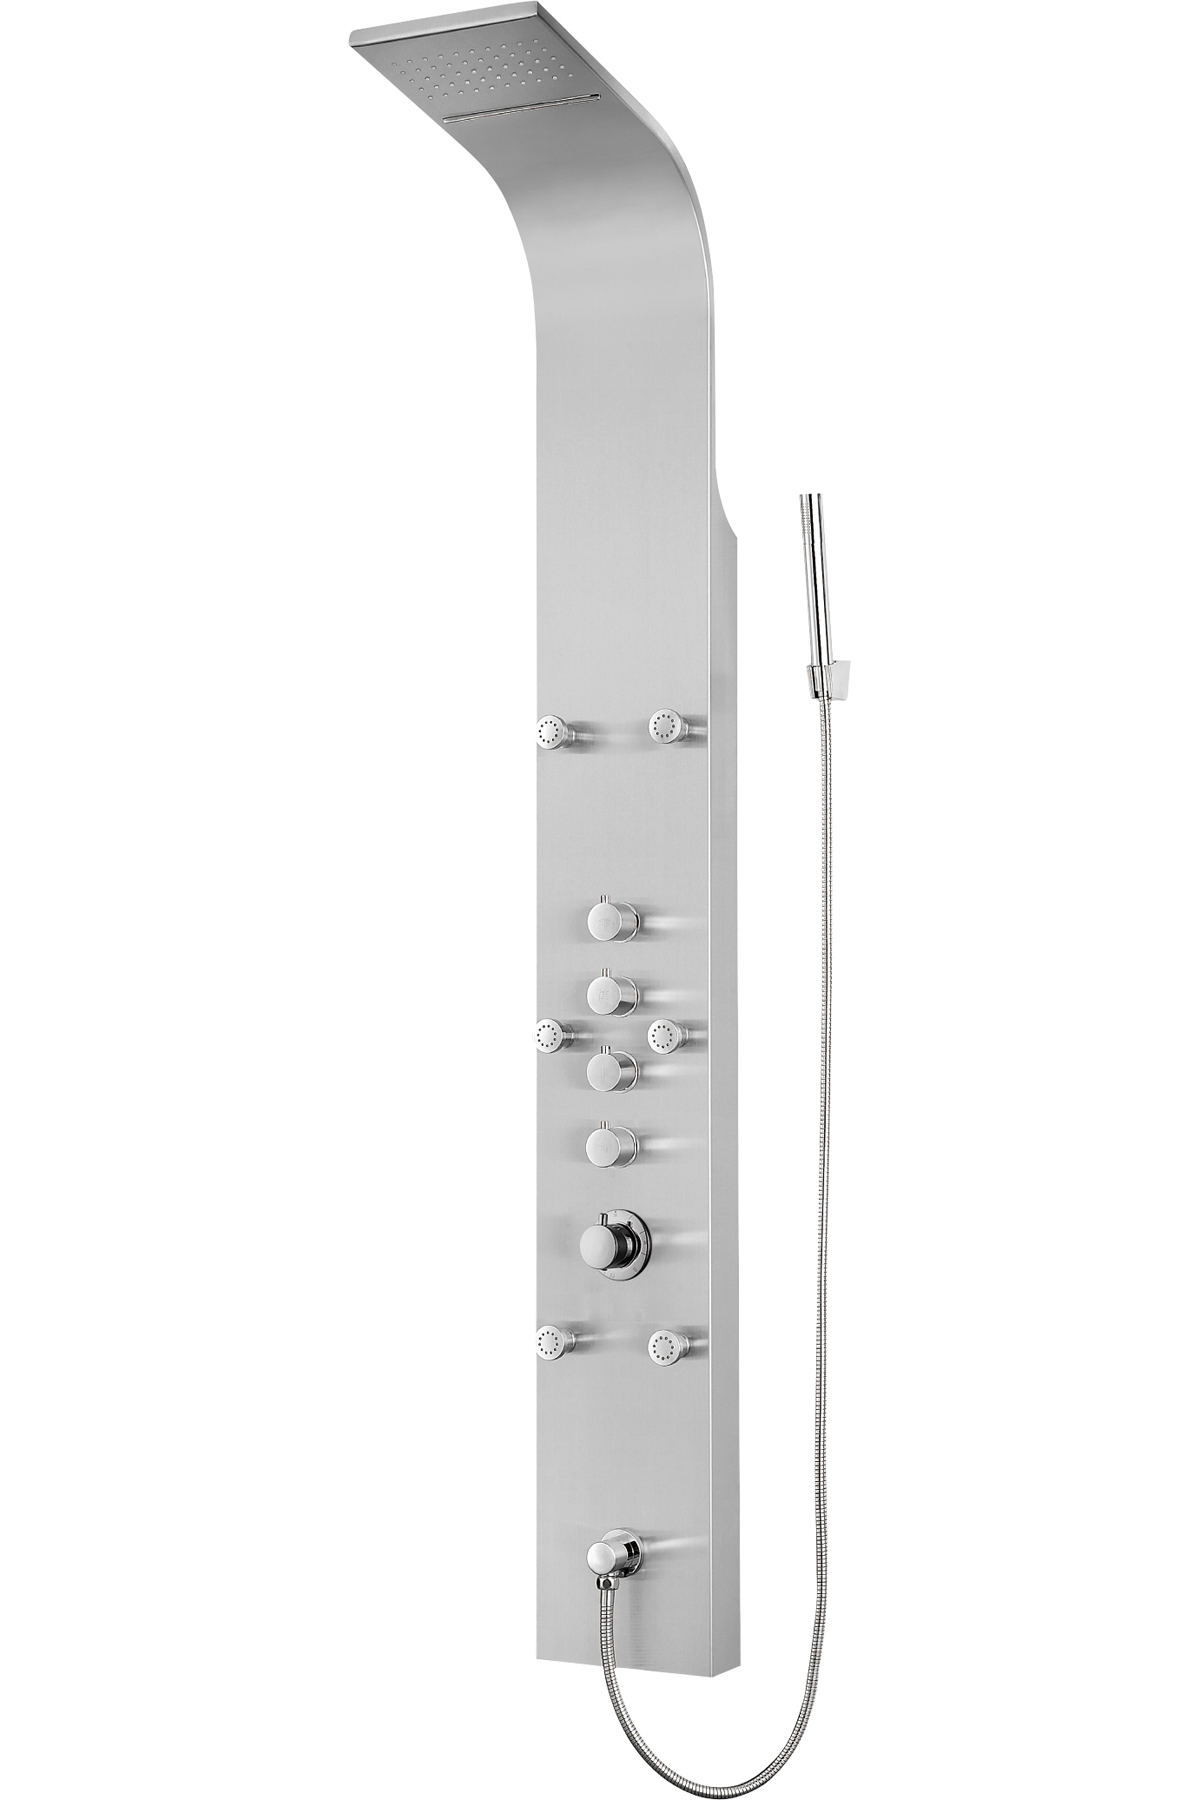 "65"" Thermostatic Shower Panel with Rainfall Overhead Showerhead"